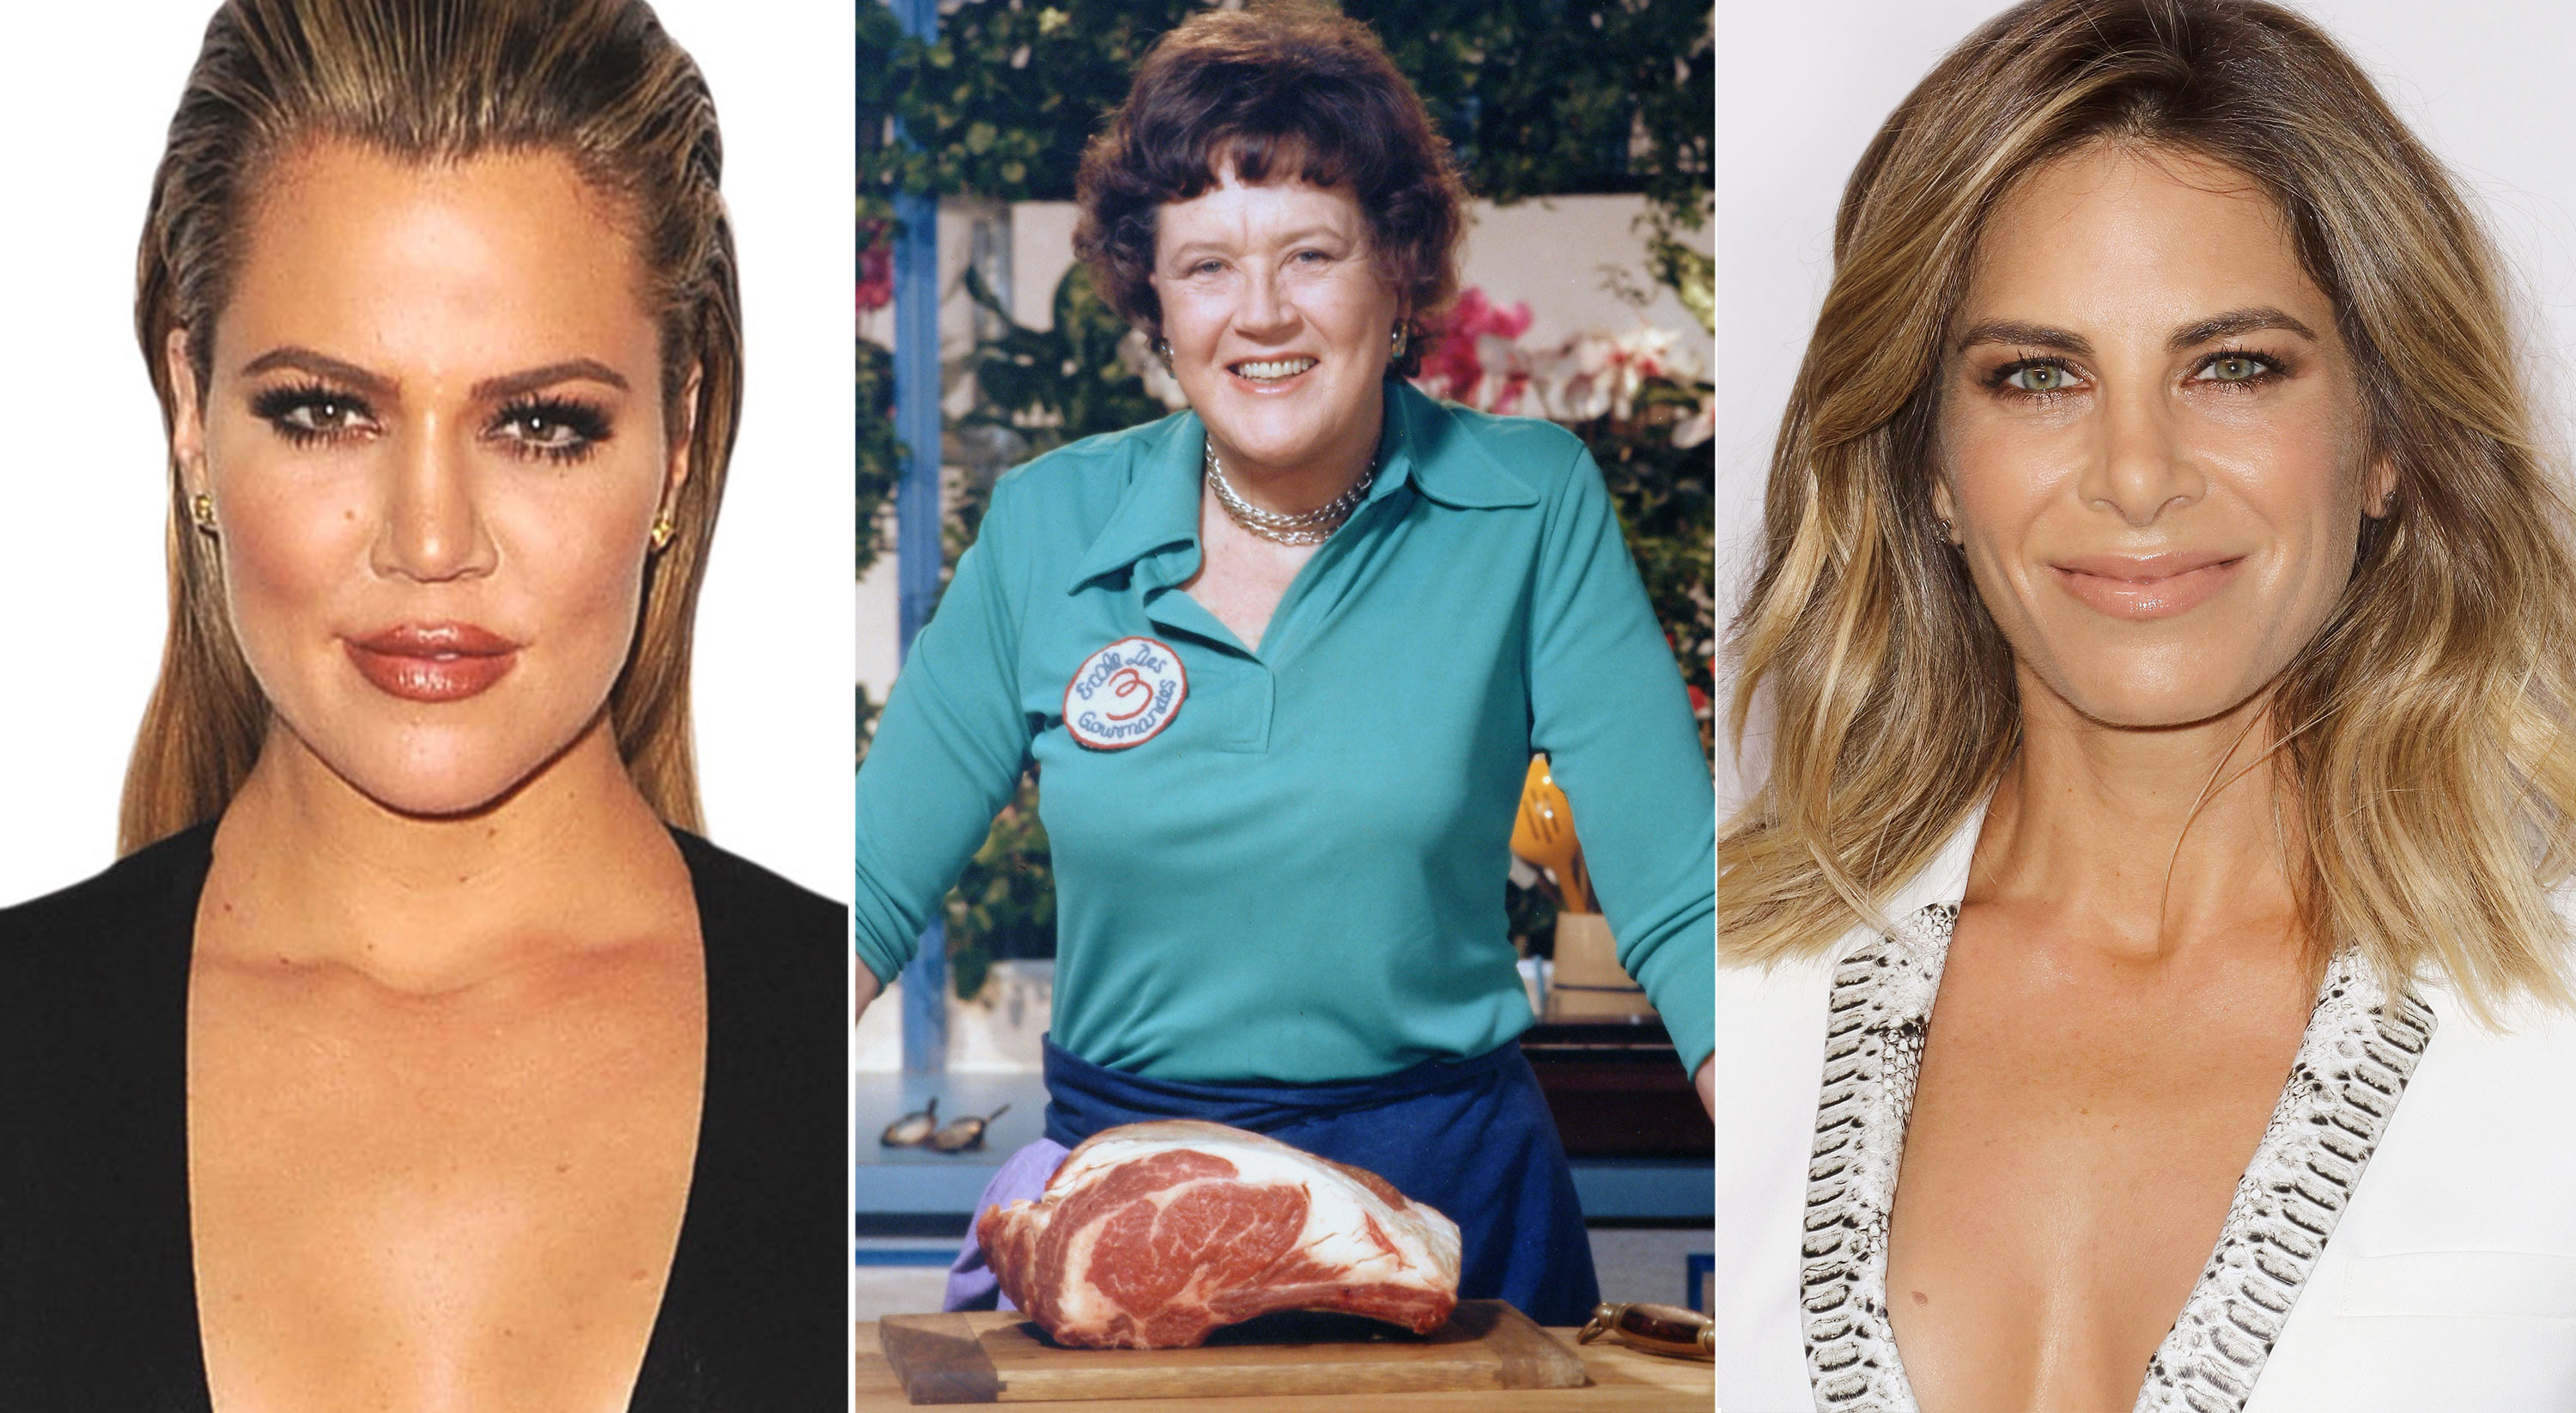 11 Times Celebs Gave Great Diet Advice